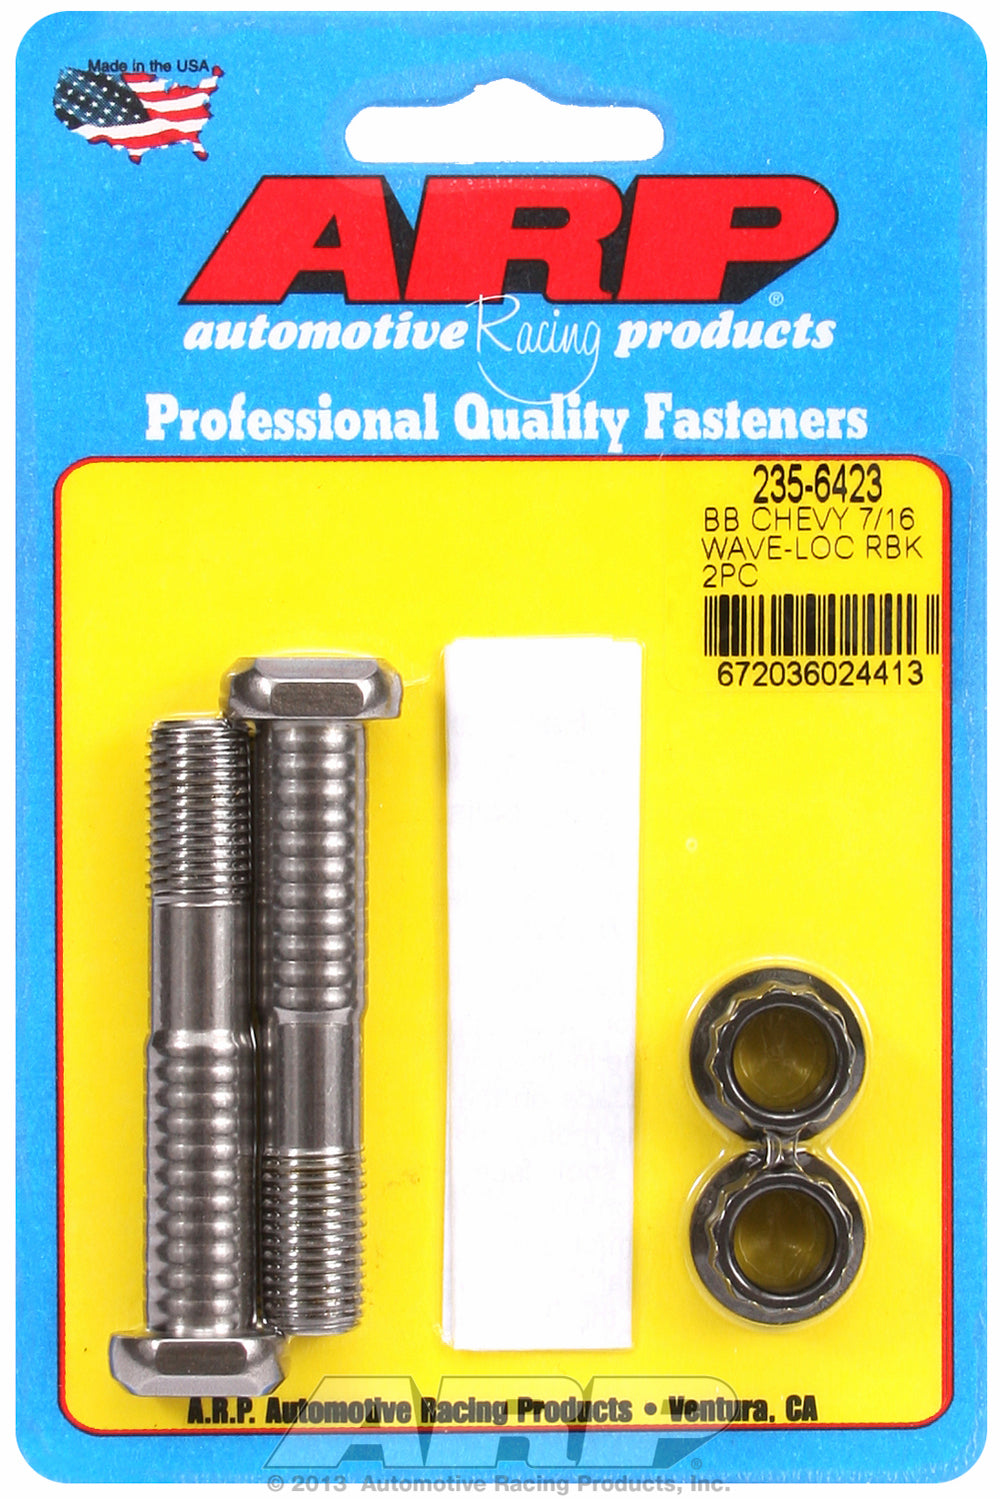 Pro Wave ARP2000 2-pc Rod Bolt Kit for Chevrolet 454-502 cid 7/16˝ with 12 pt nuts